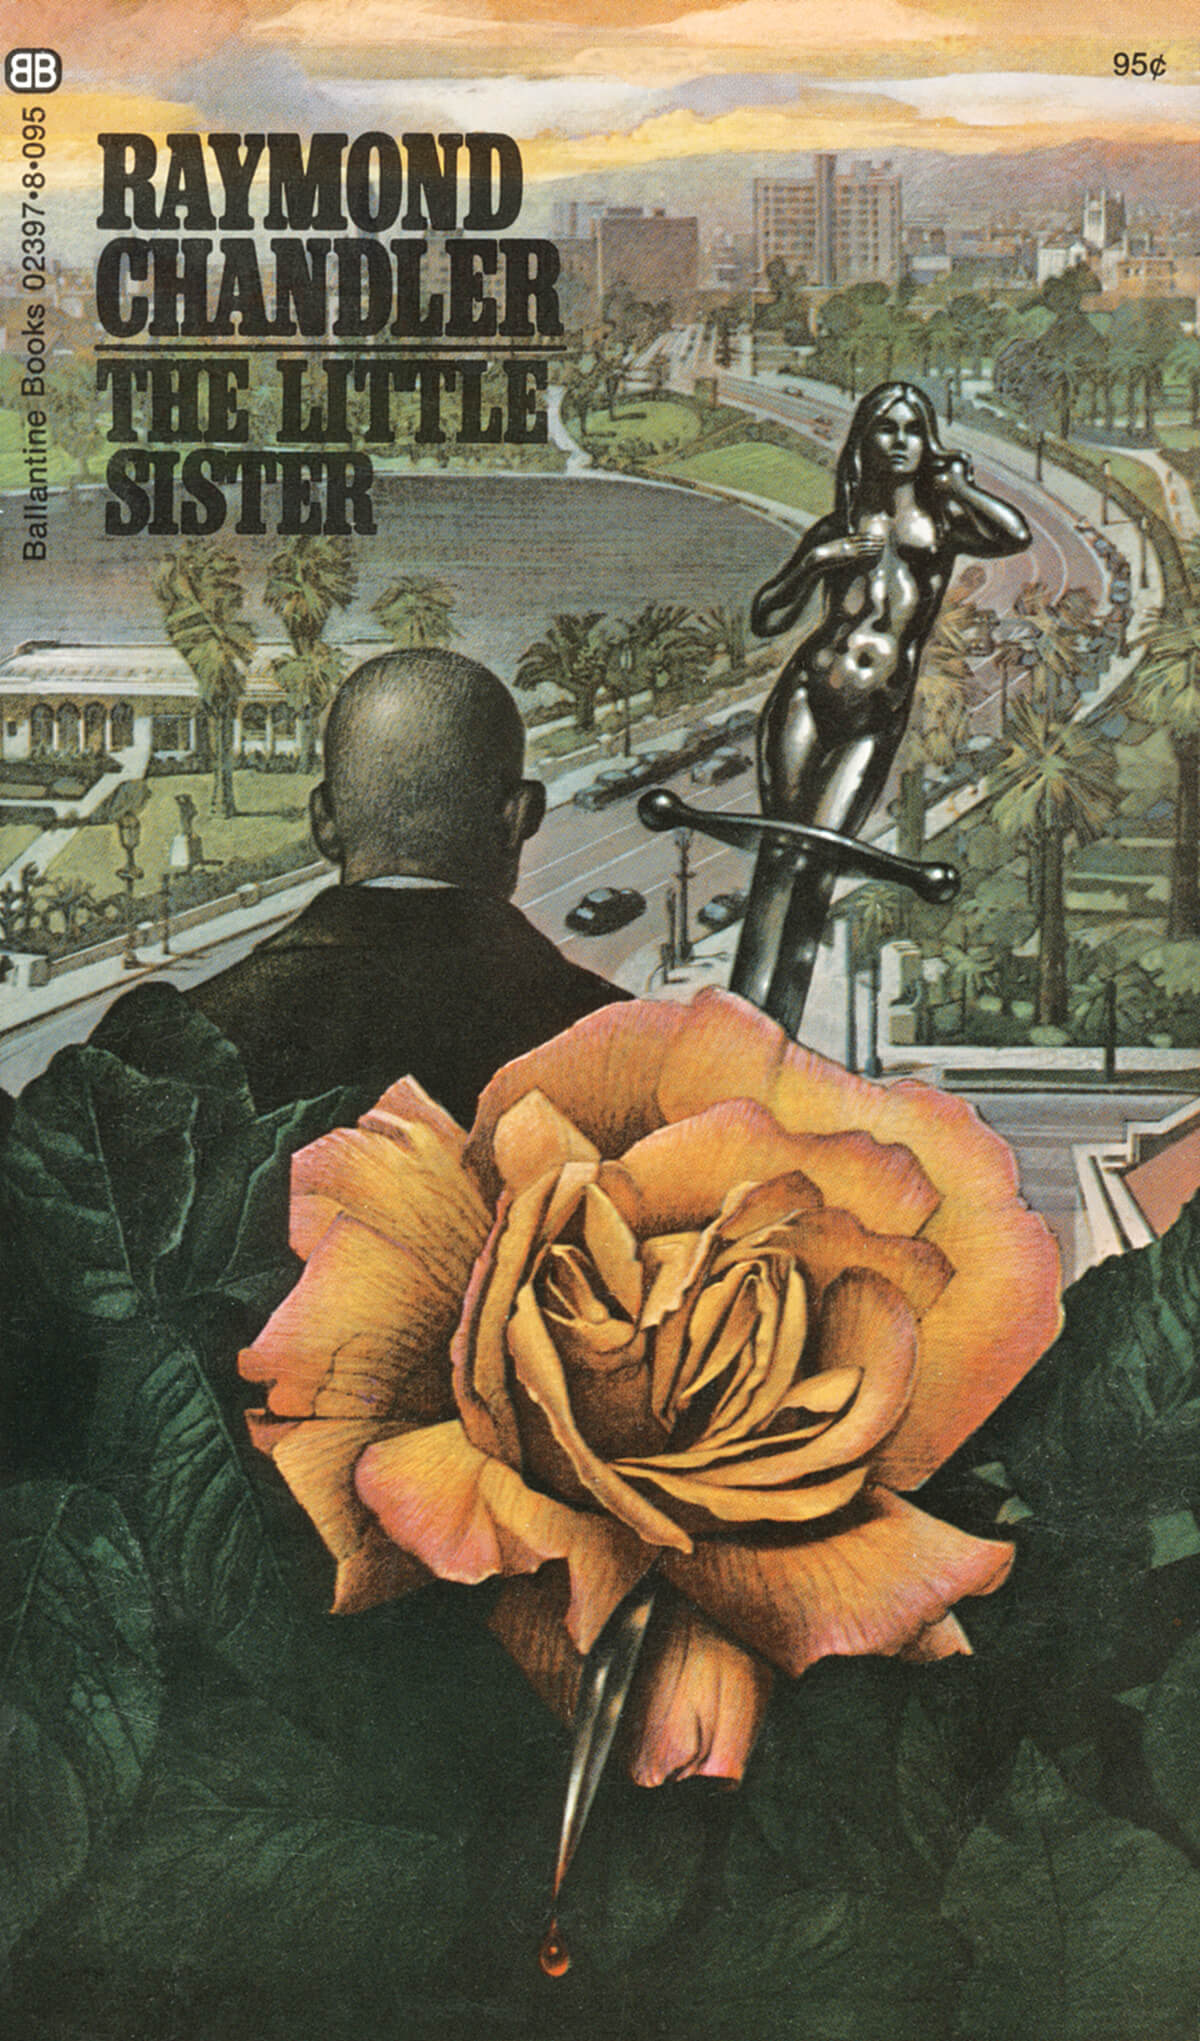 The Little Sister by Raymond Chandler, Cover by Tom Adams